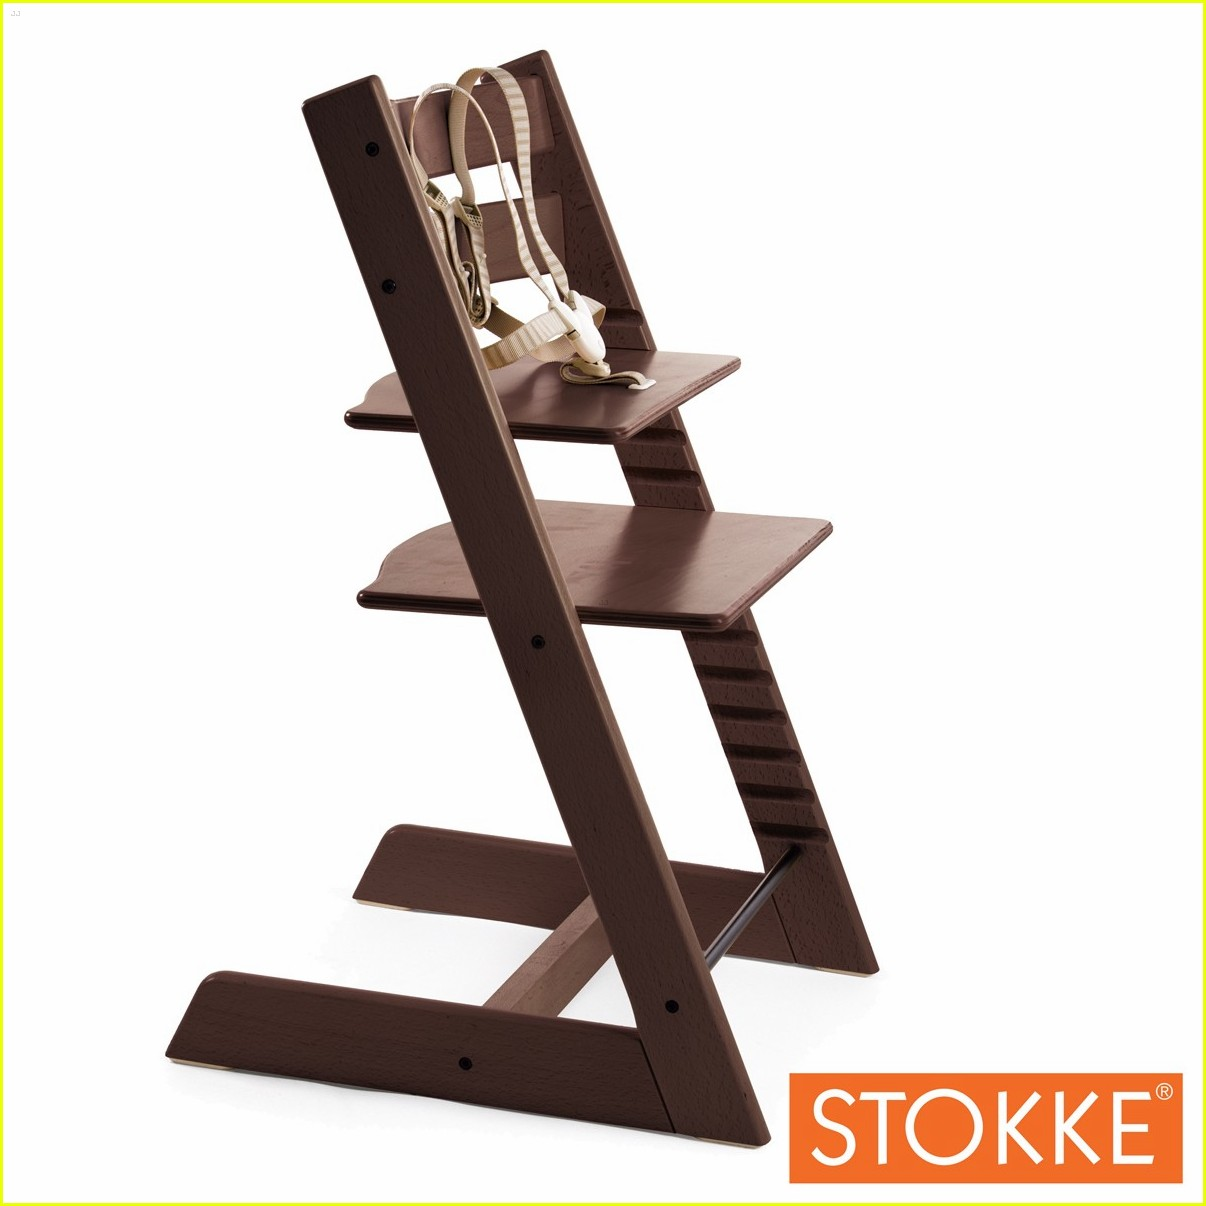 stokke high chair